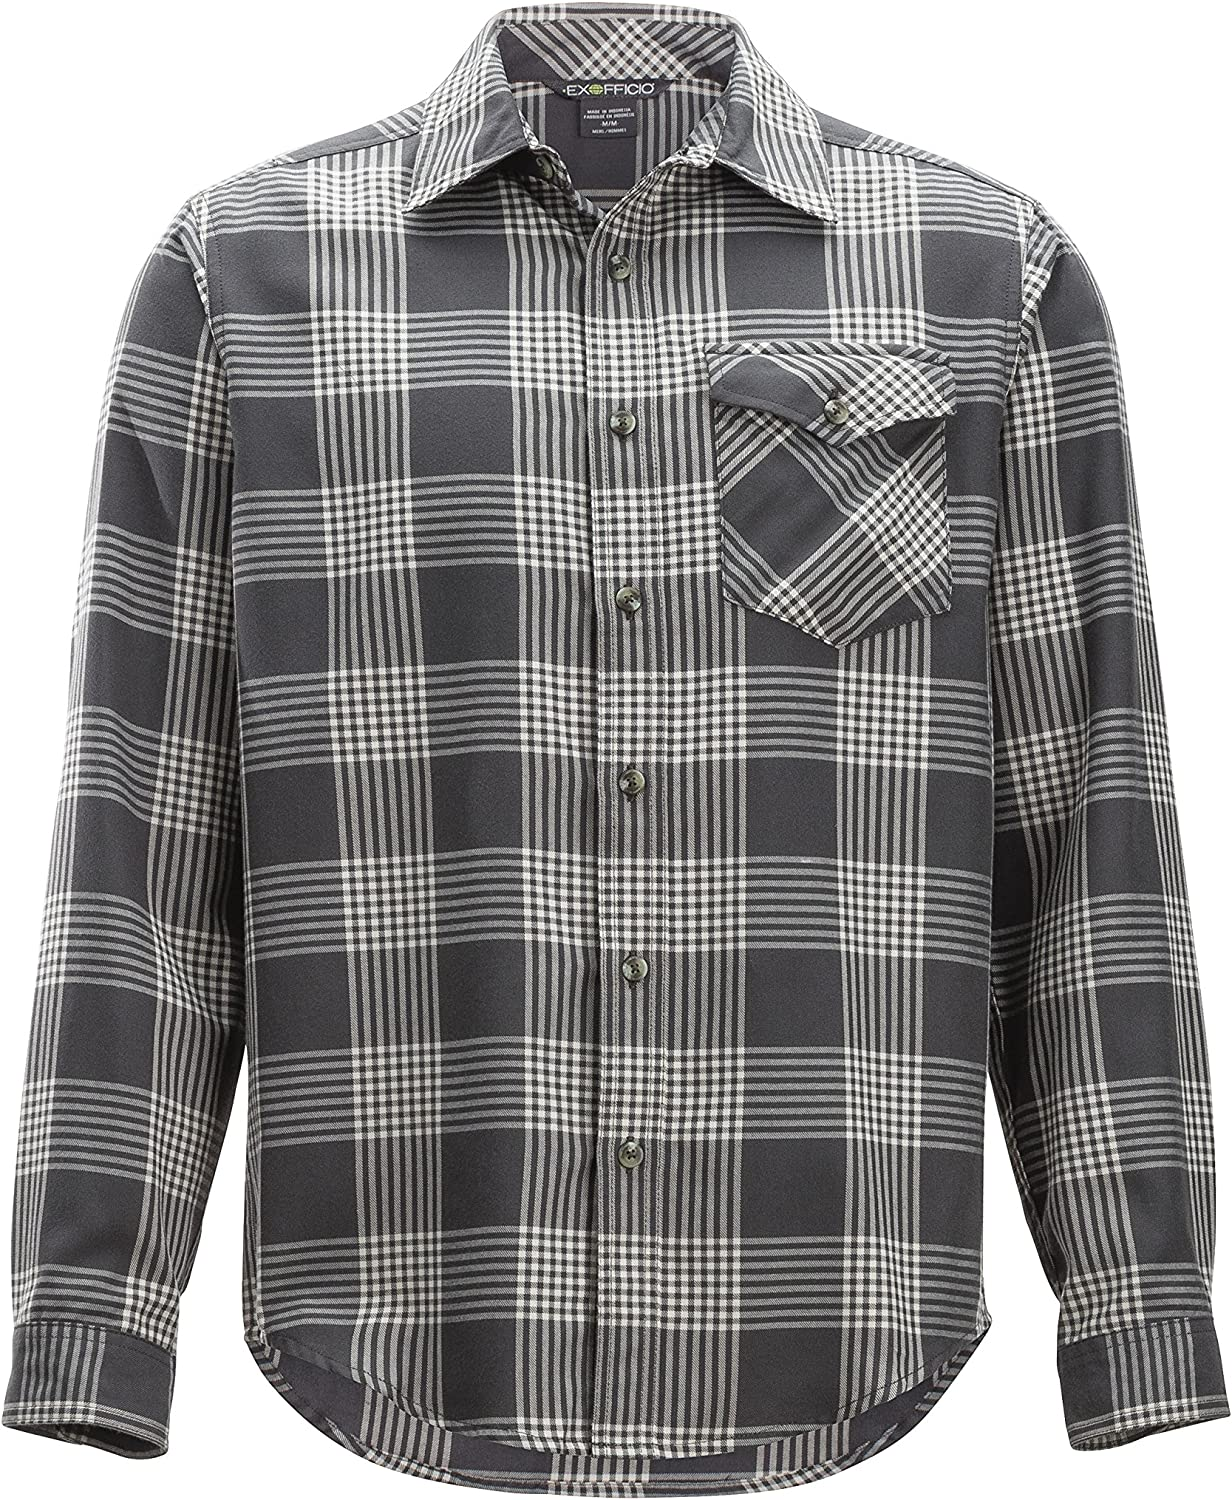 ExOfficio Okanagan Plaidbutton Down Shirts